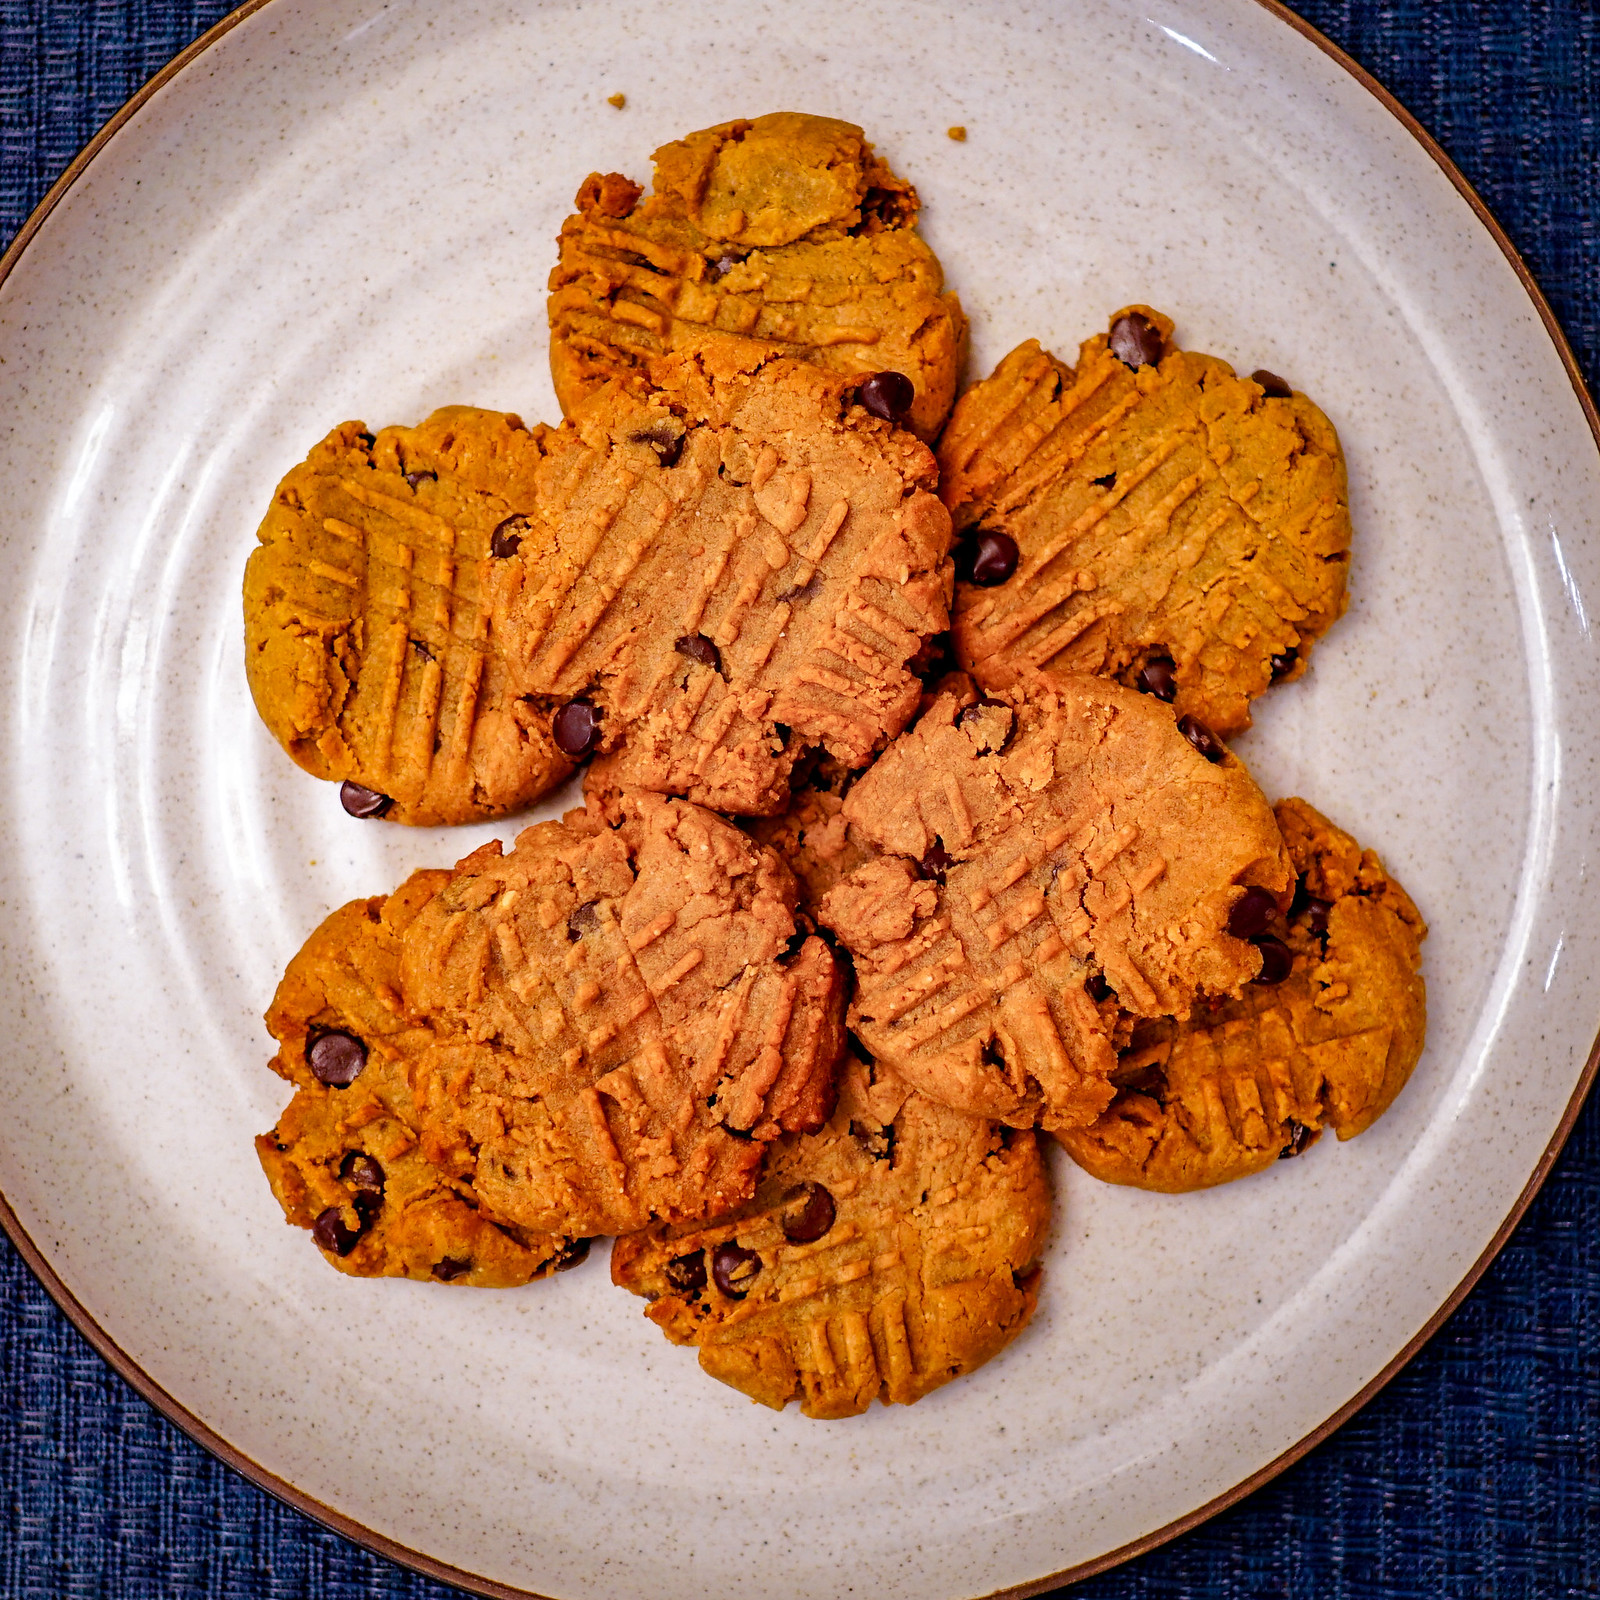 2018.12.30 Low Carbohydrate Cookies, Rehoboth Beach DE, USA 09394